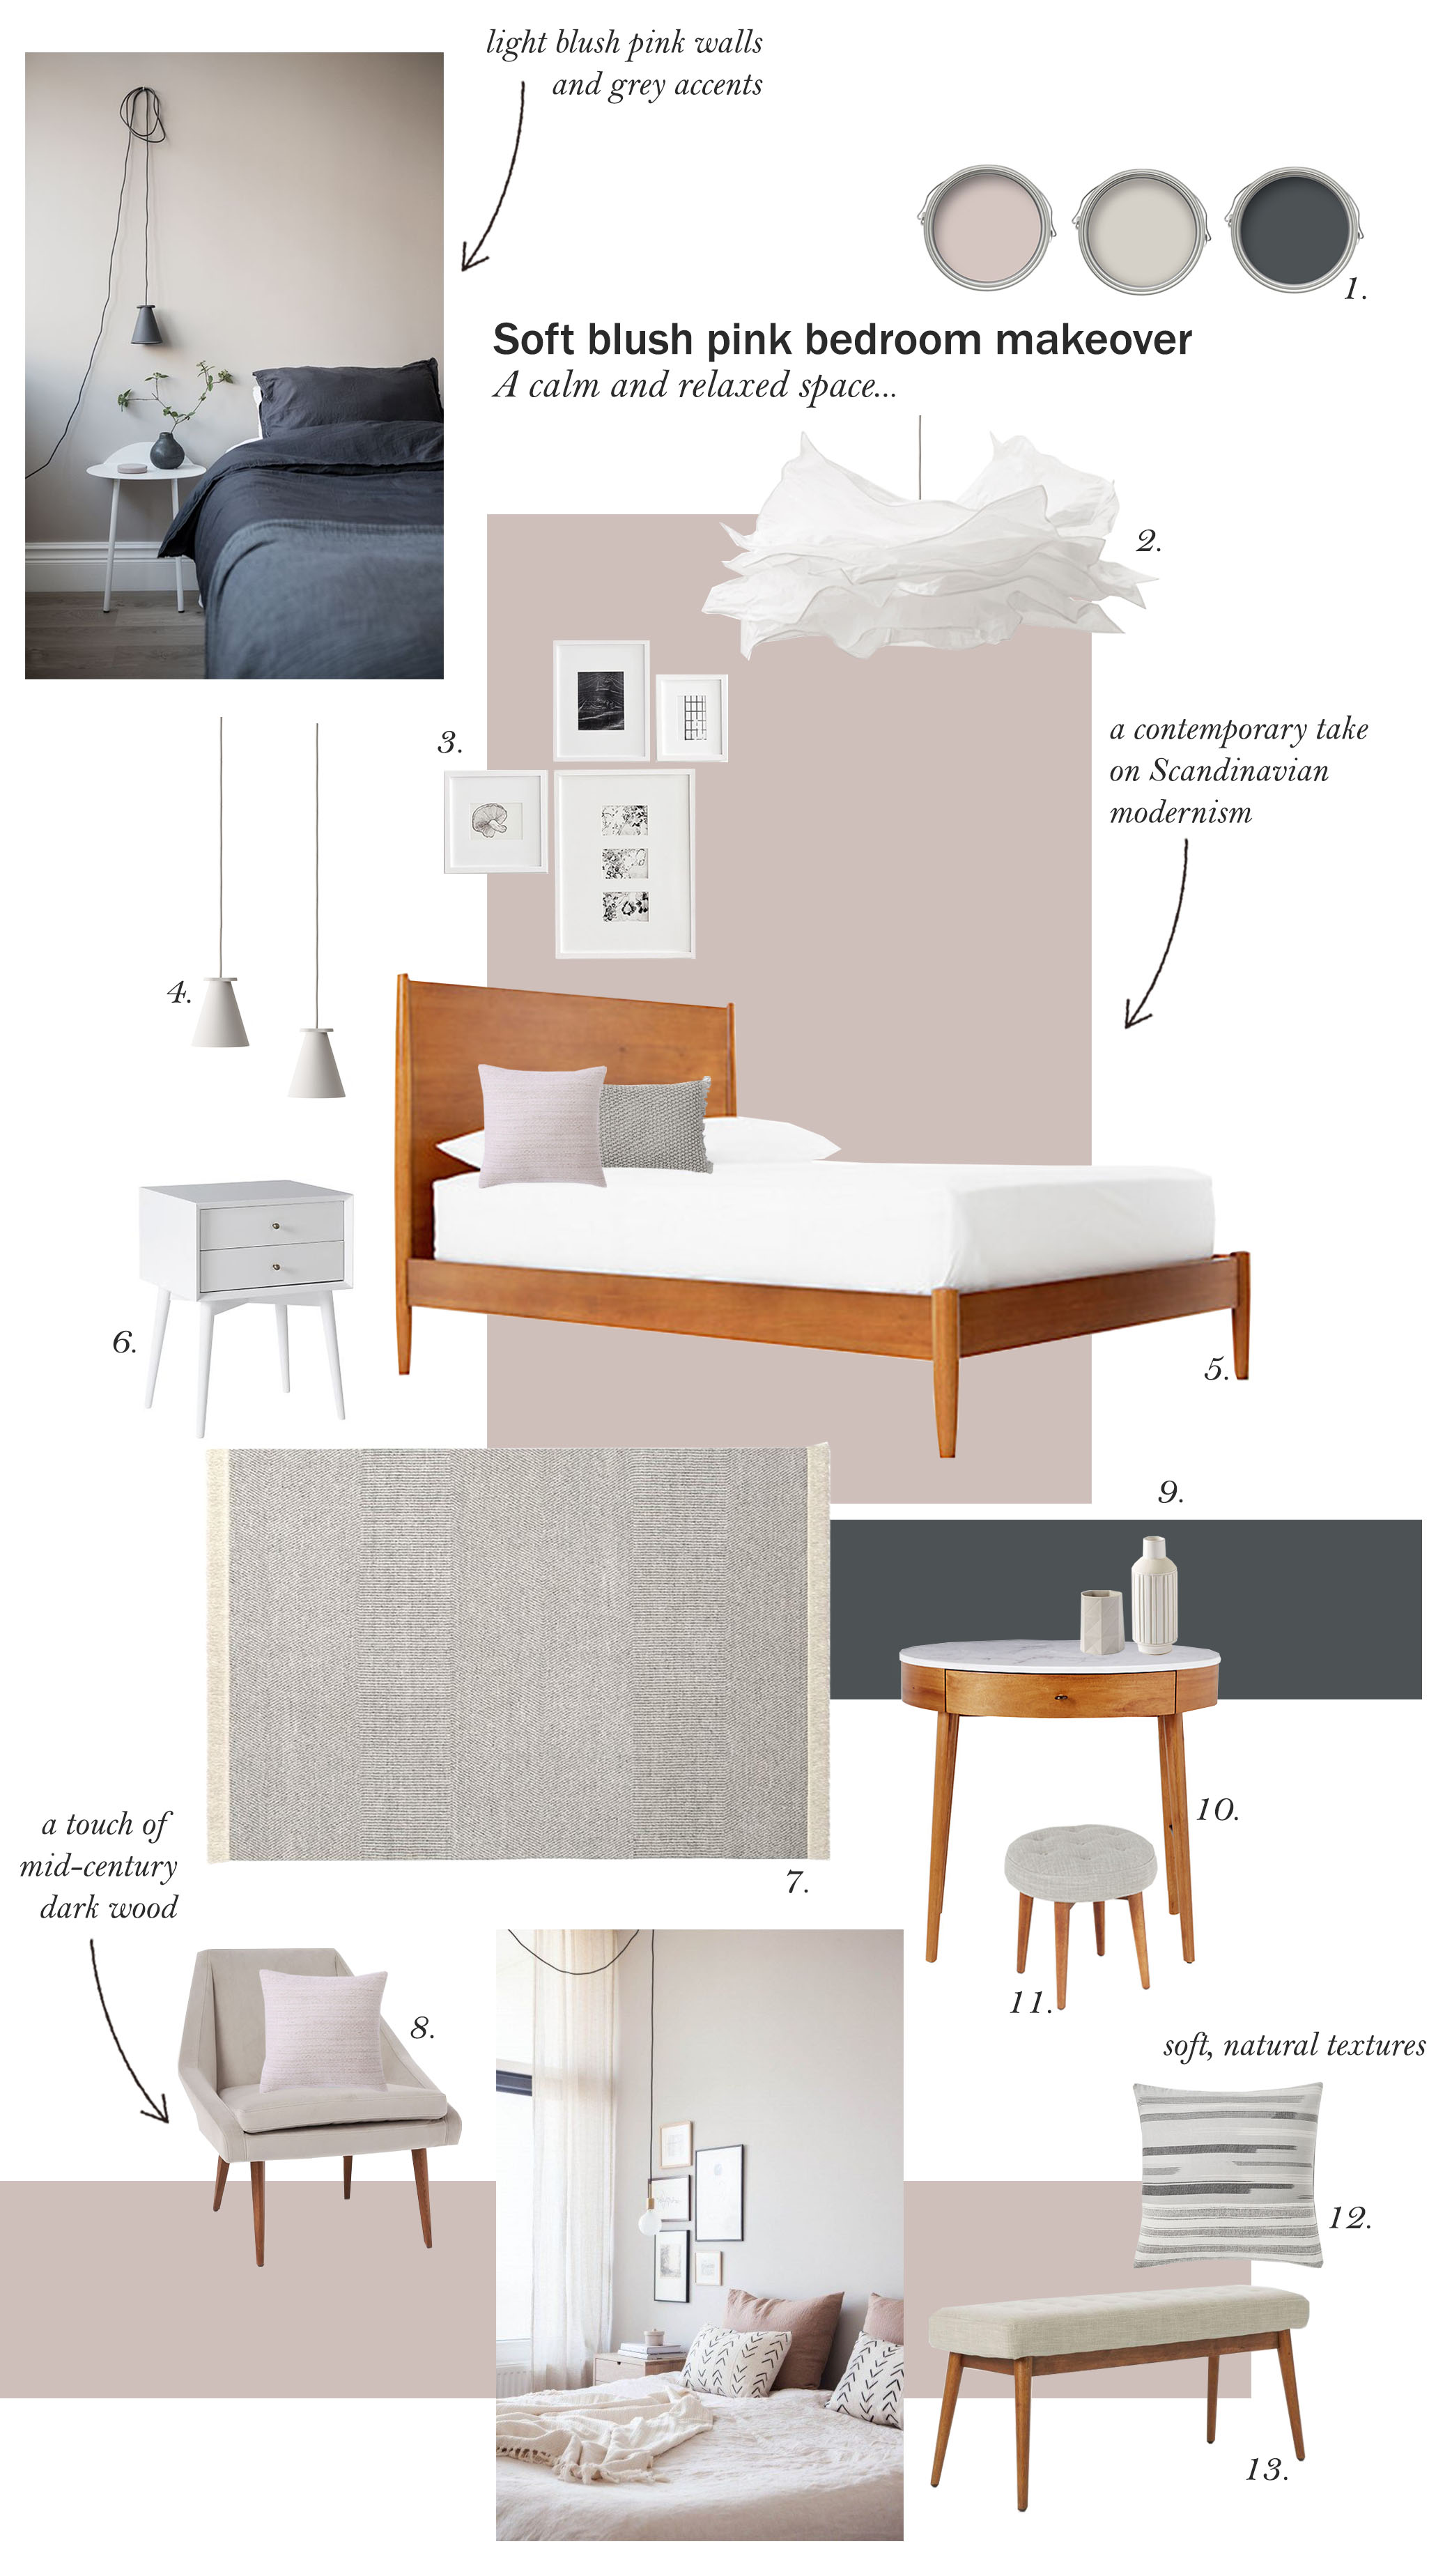 catesthill soft dusty pink bedroom makeover inspiration cate st hill rh catesthill com